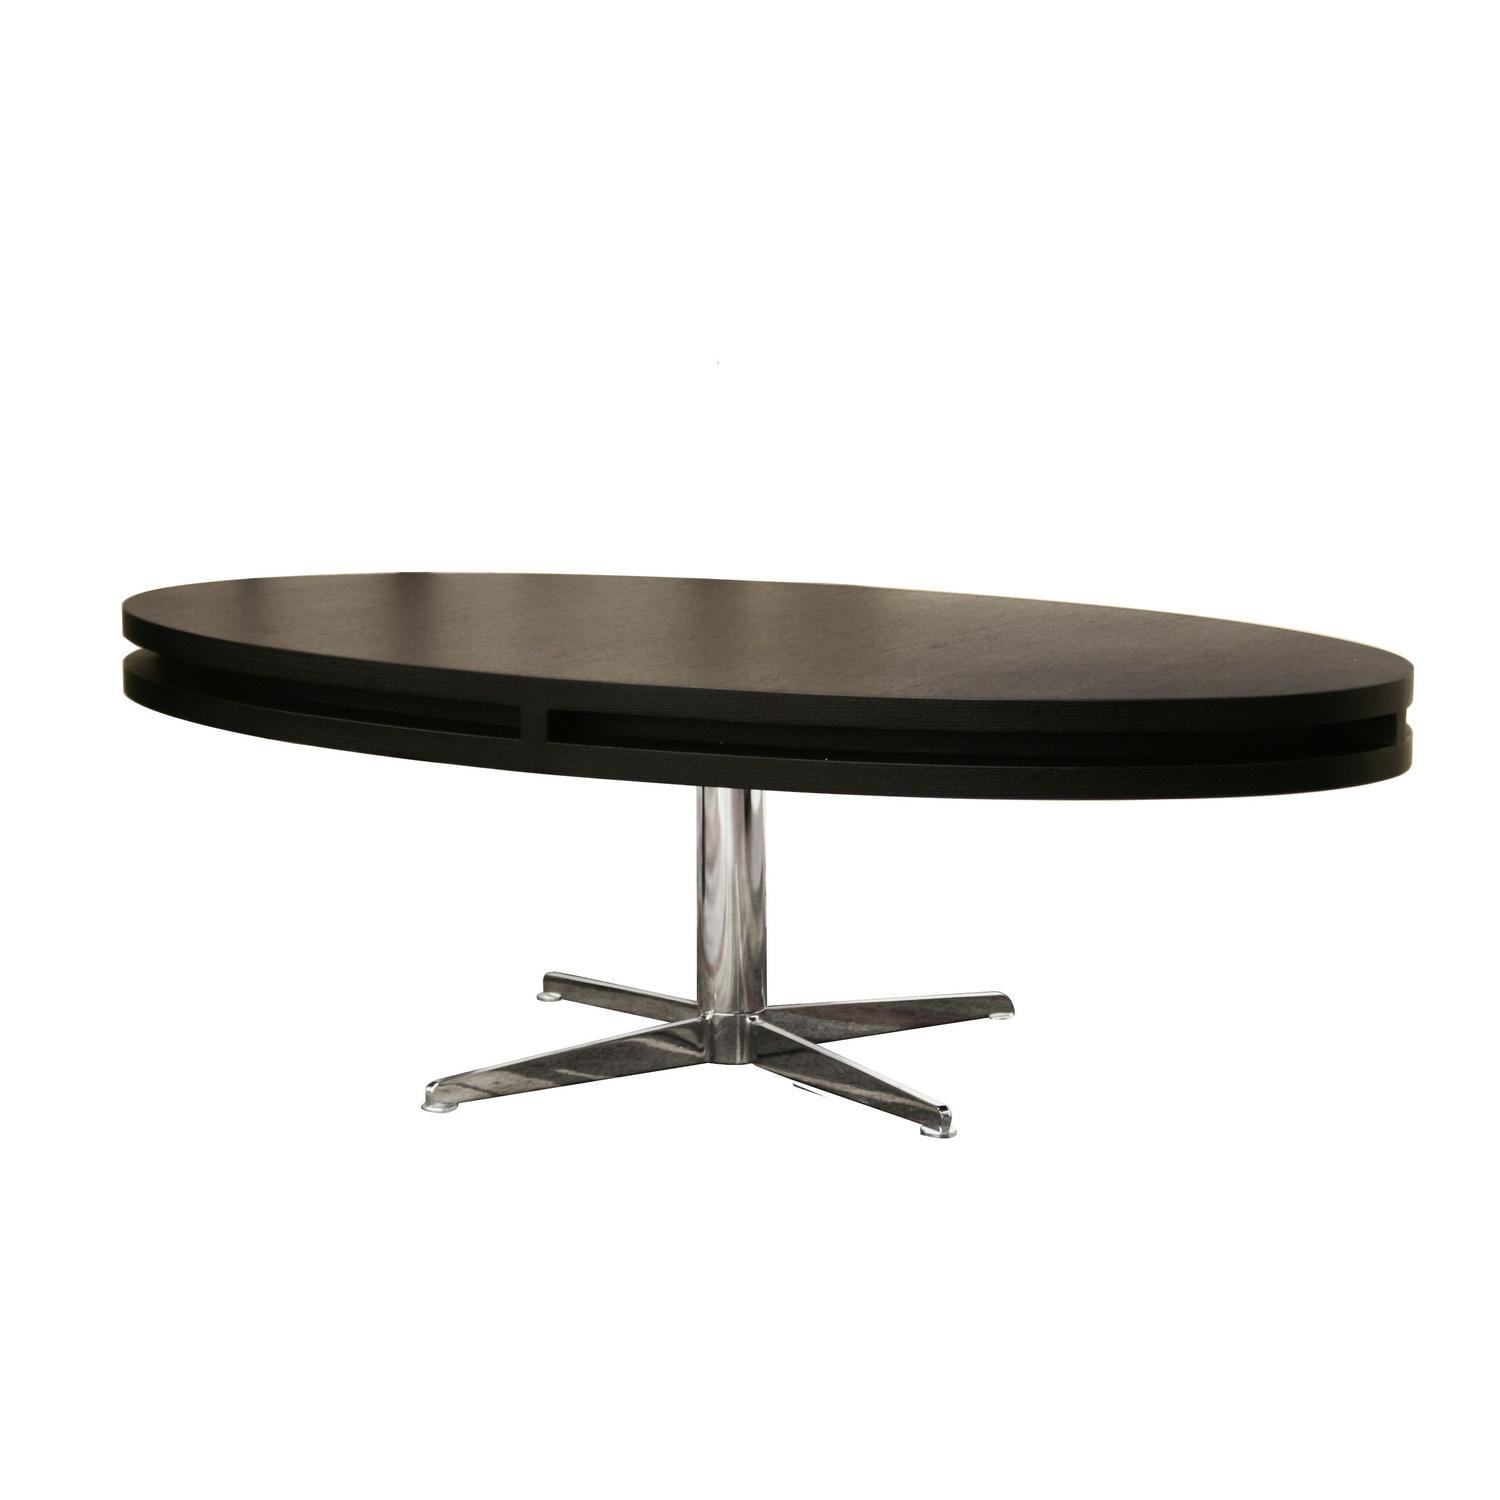 Oval Rotating Coffee Table: McKenzie Modern Black Oval Rotating Coffee Table